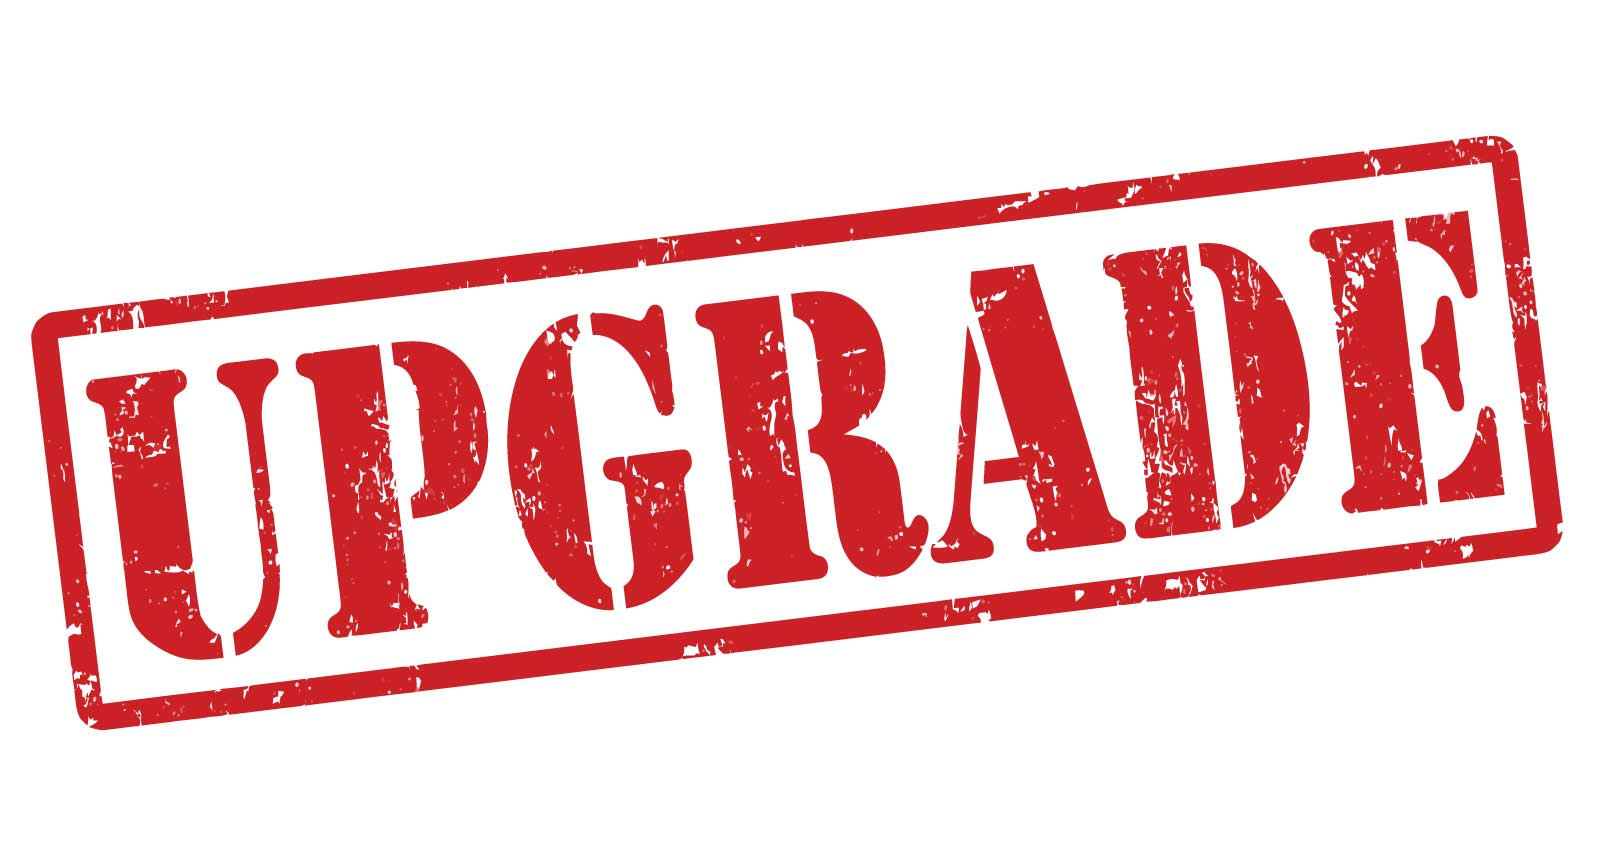 Megalytic Upgrade August 2014